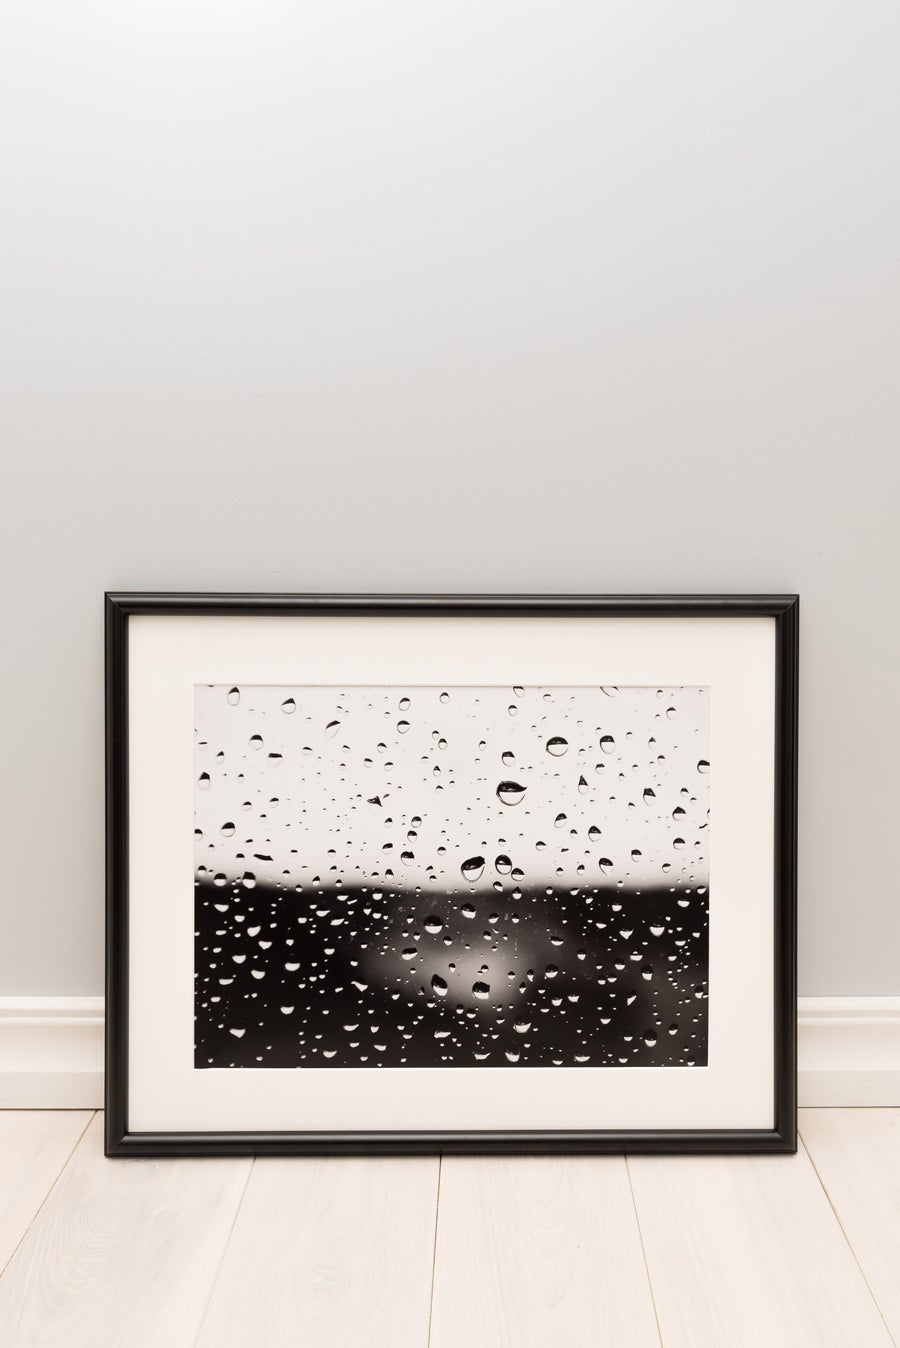 Image of Raindrops